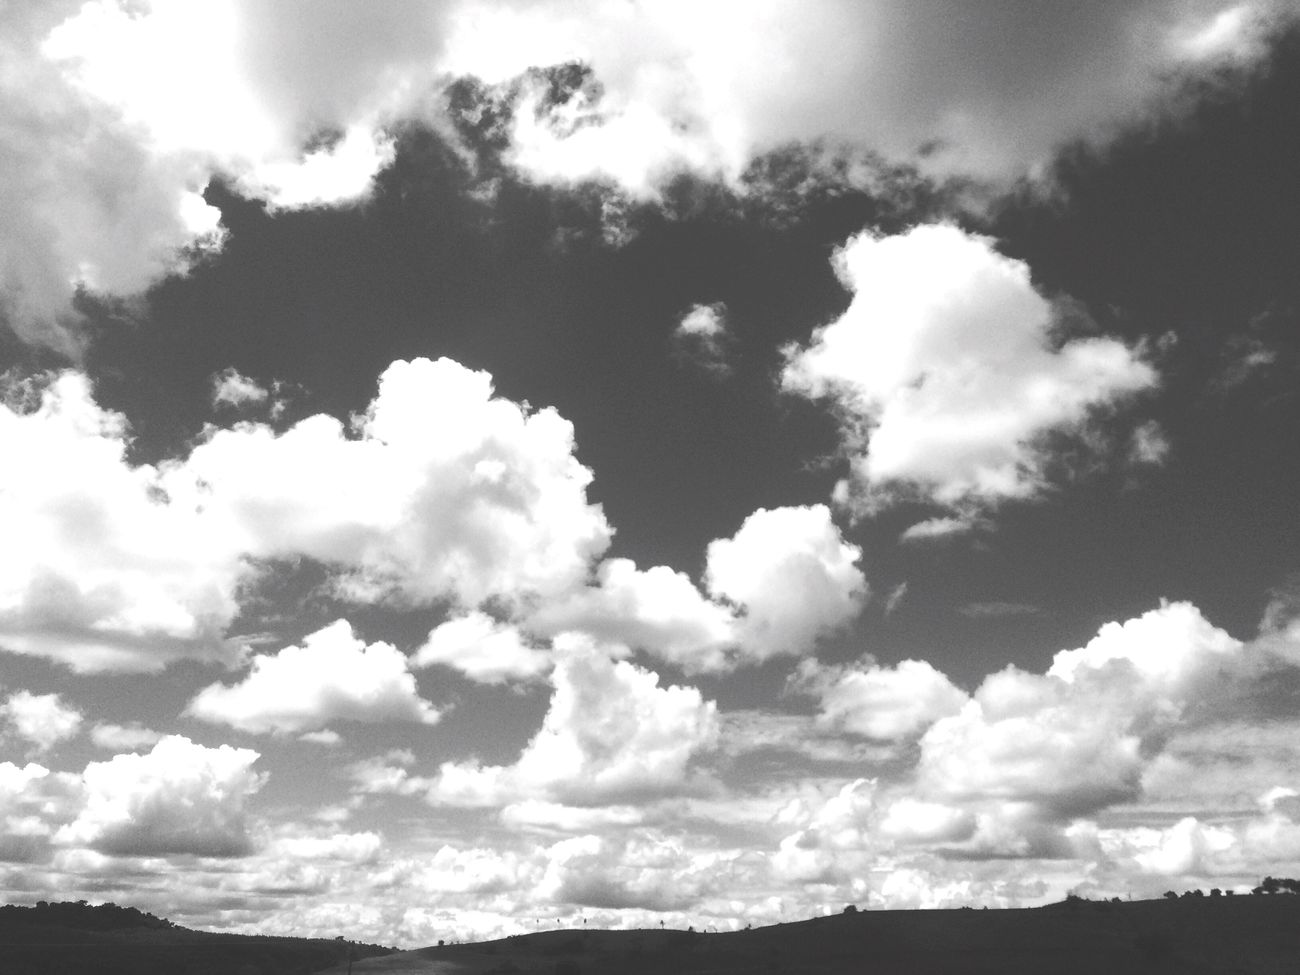 Blackandwhite Beauty In Nature Sky Cloud - Sky Cloudscape Cumulus Cloud Abstract Scenics Fluffy Low Angle View